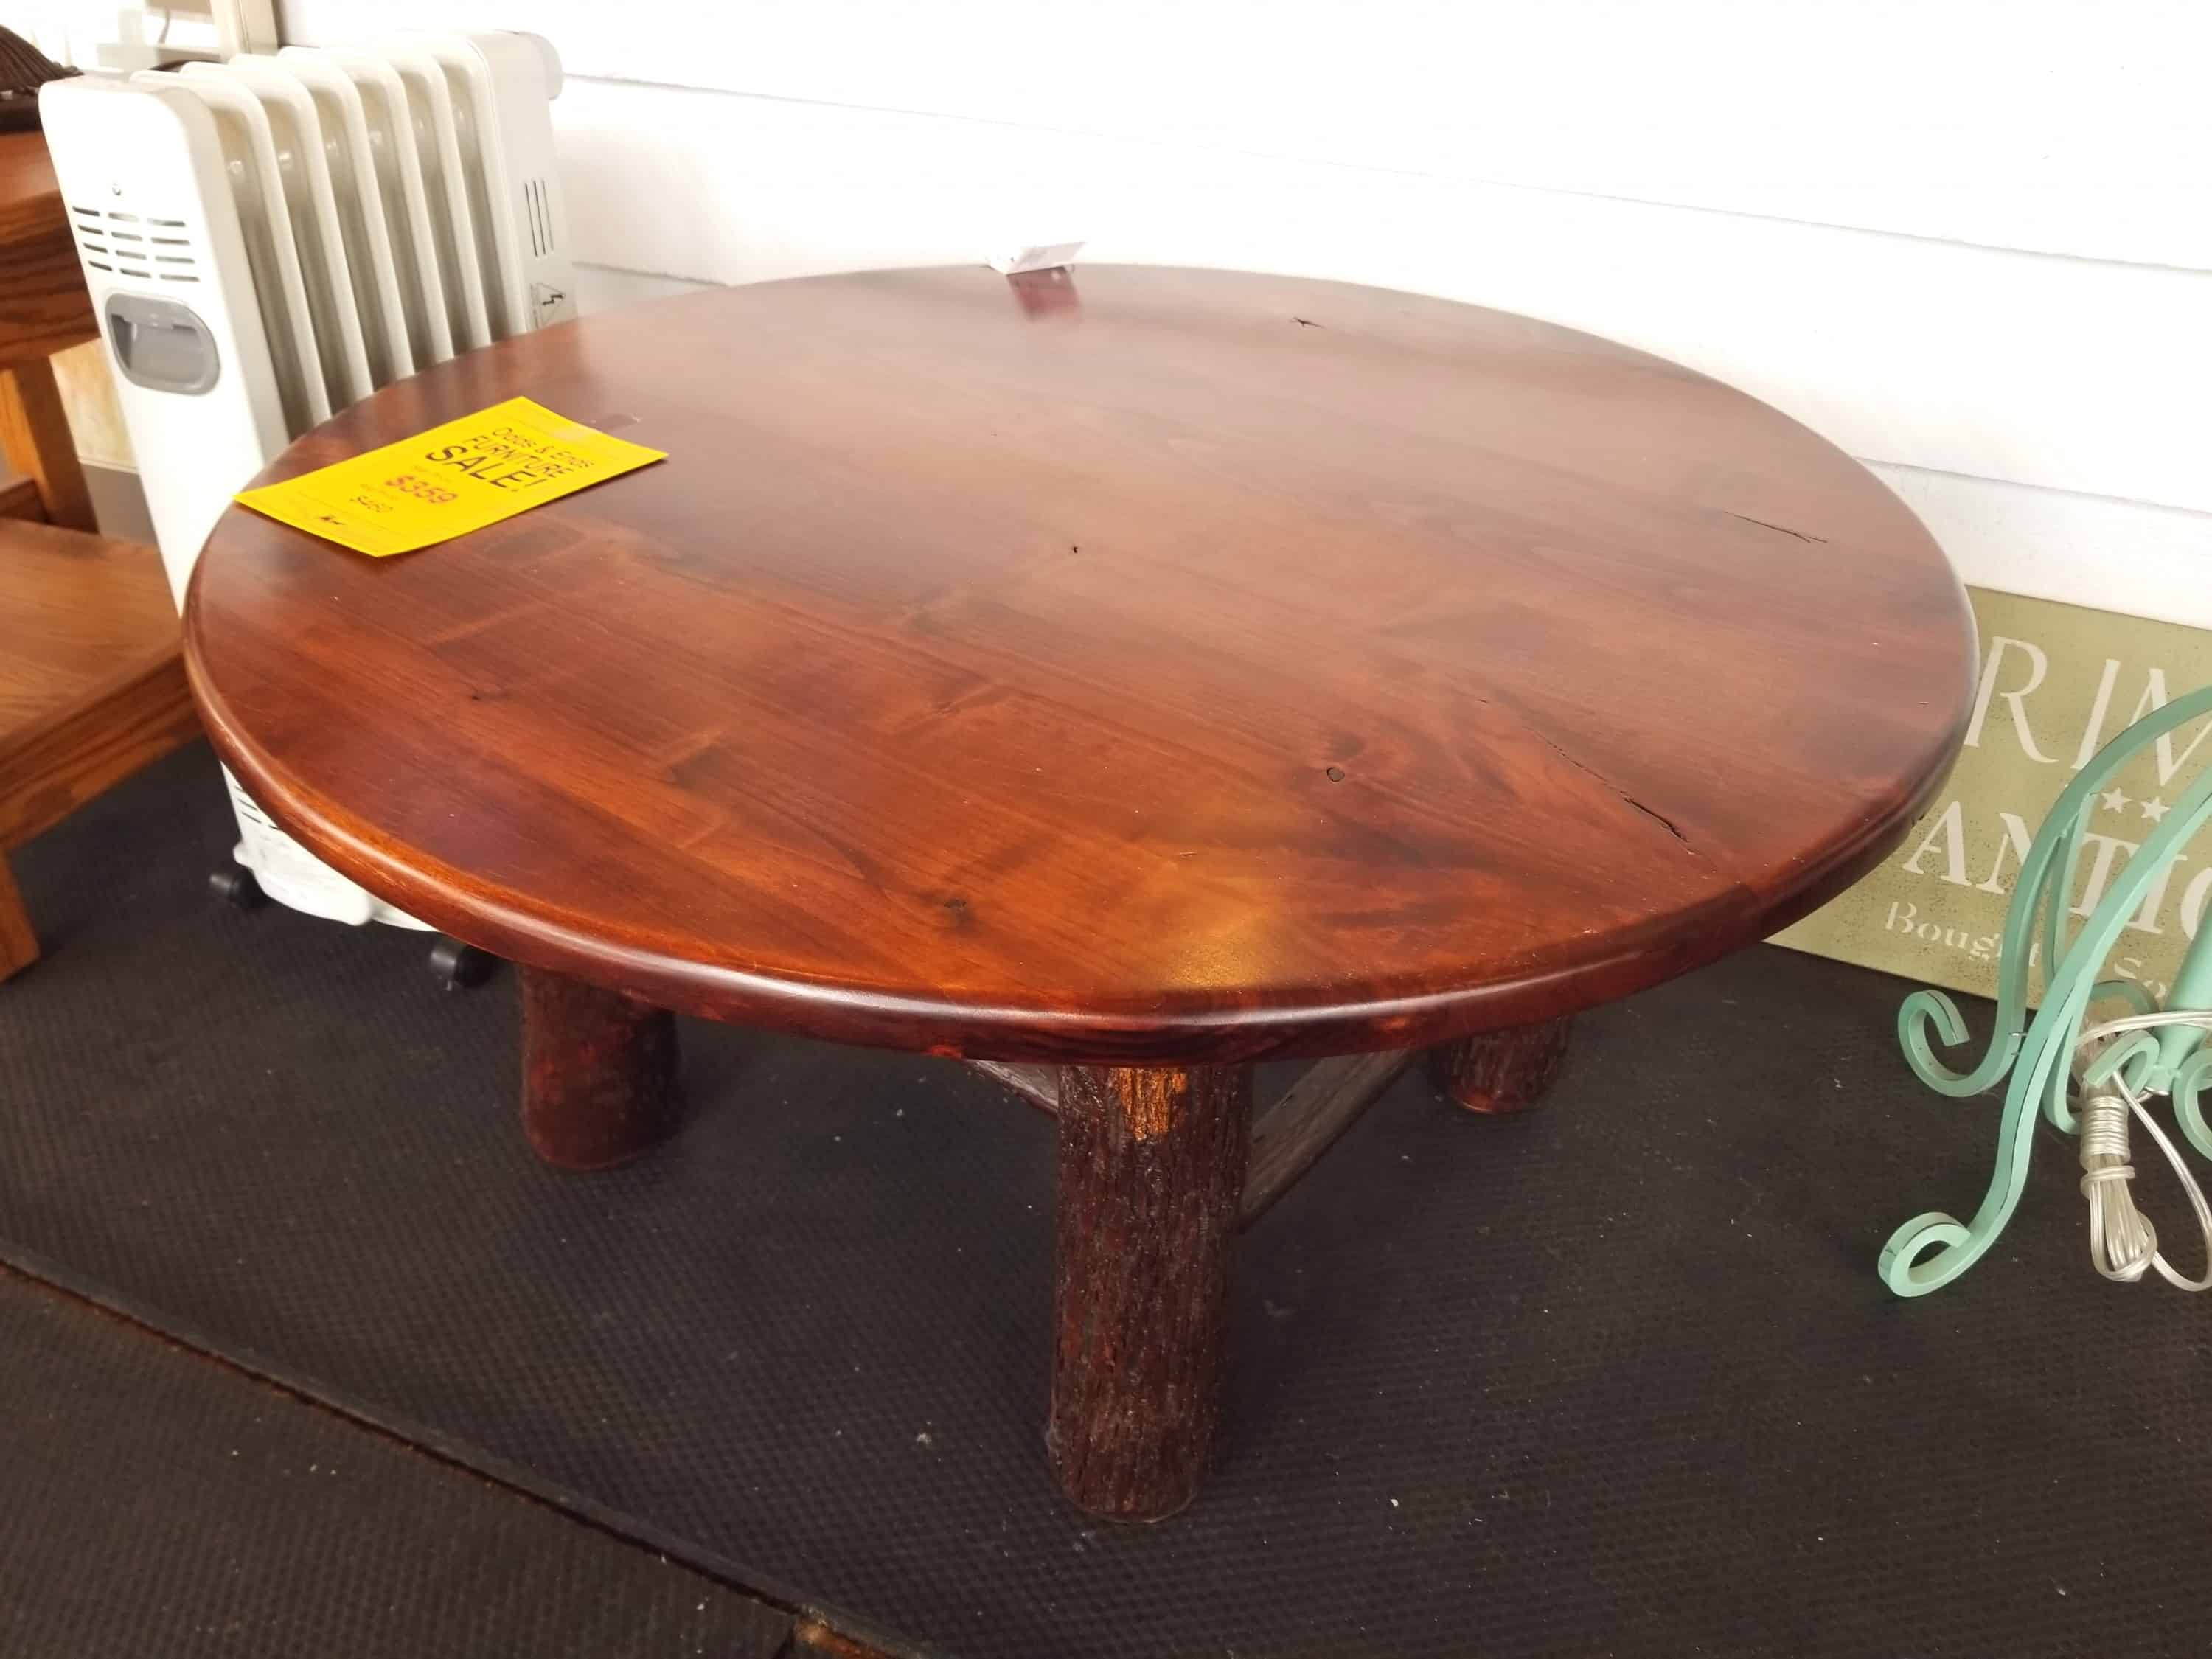 Phenomenal Round Coffee Table Shown In Rustic Alder With A Michaels Cherry Finish Dailytribune Chair Design For Home Dailytribuneorg